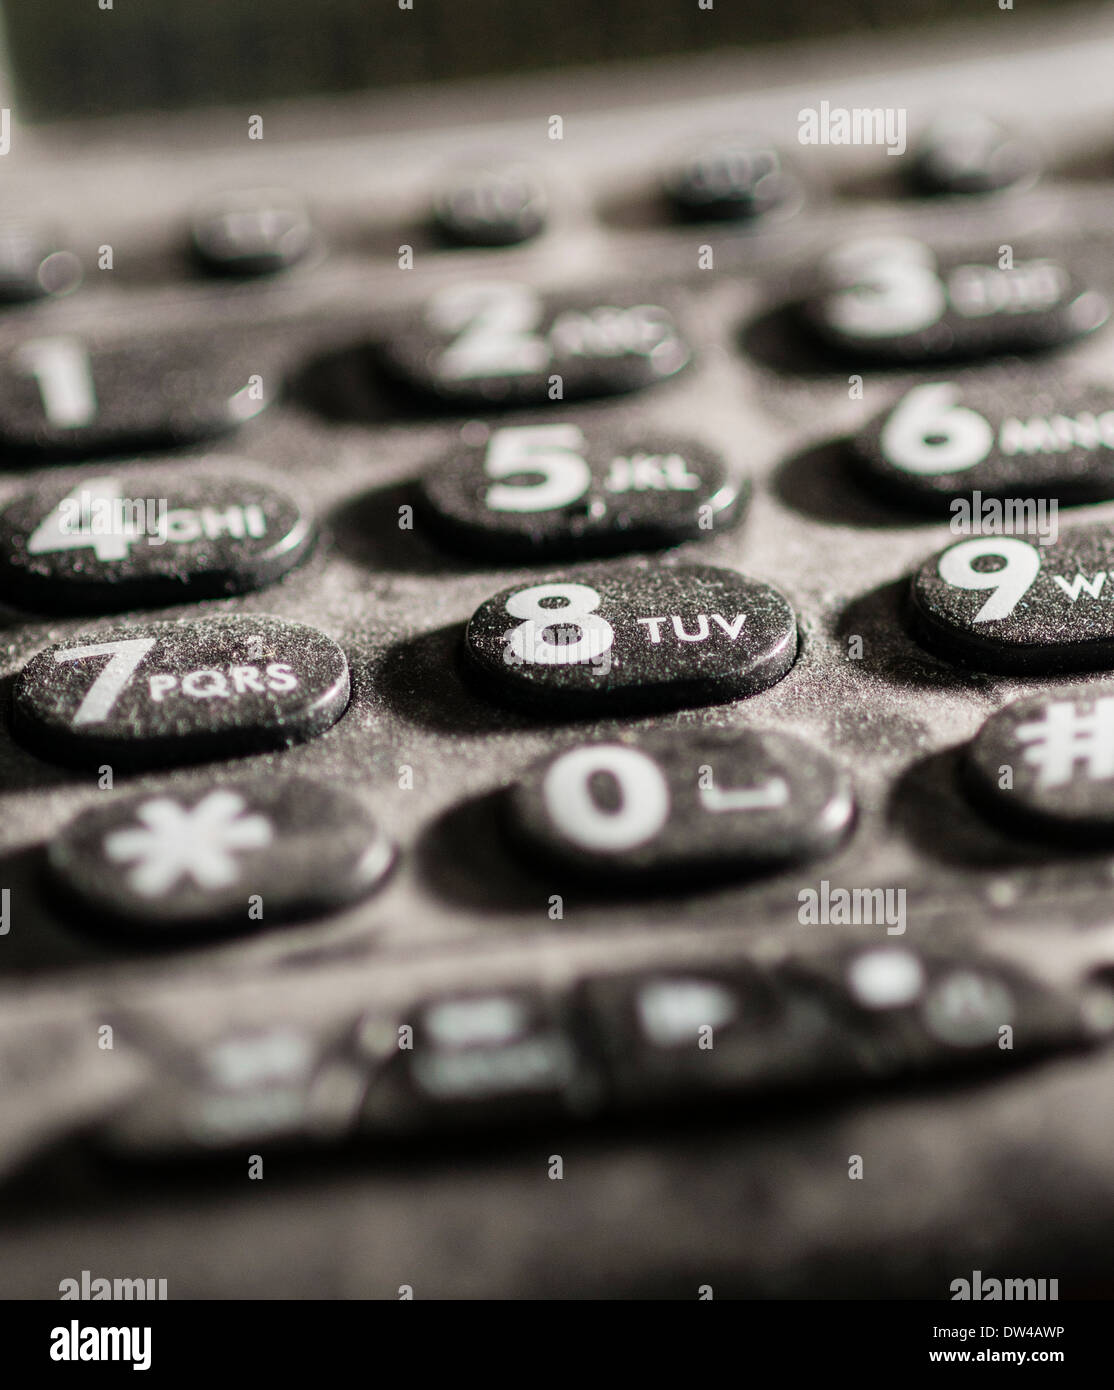 Close up of dusty telephone key pad, side lit, shallow depth-of-field. - Stock Image